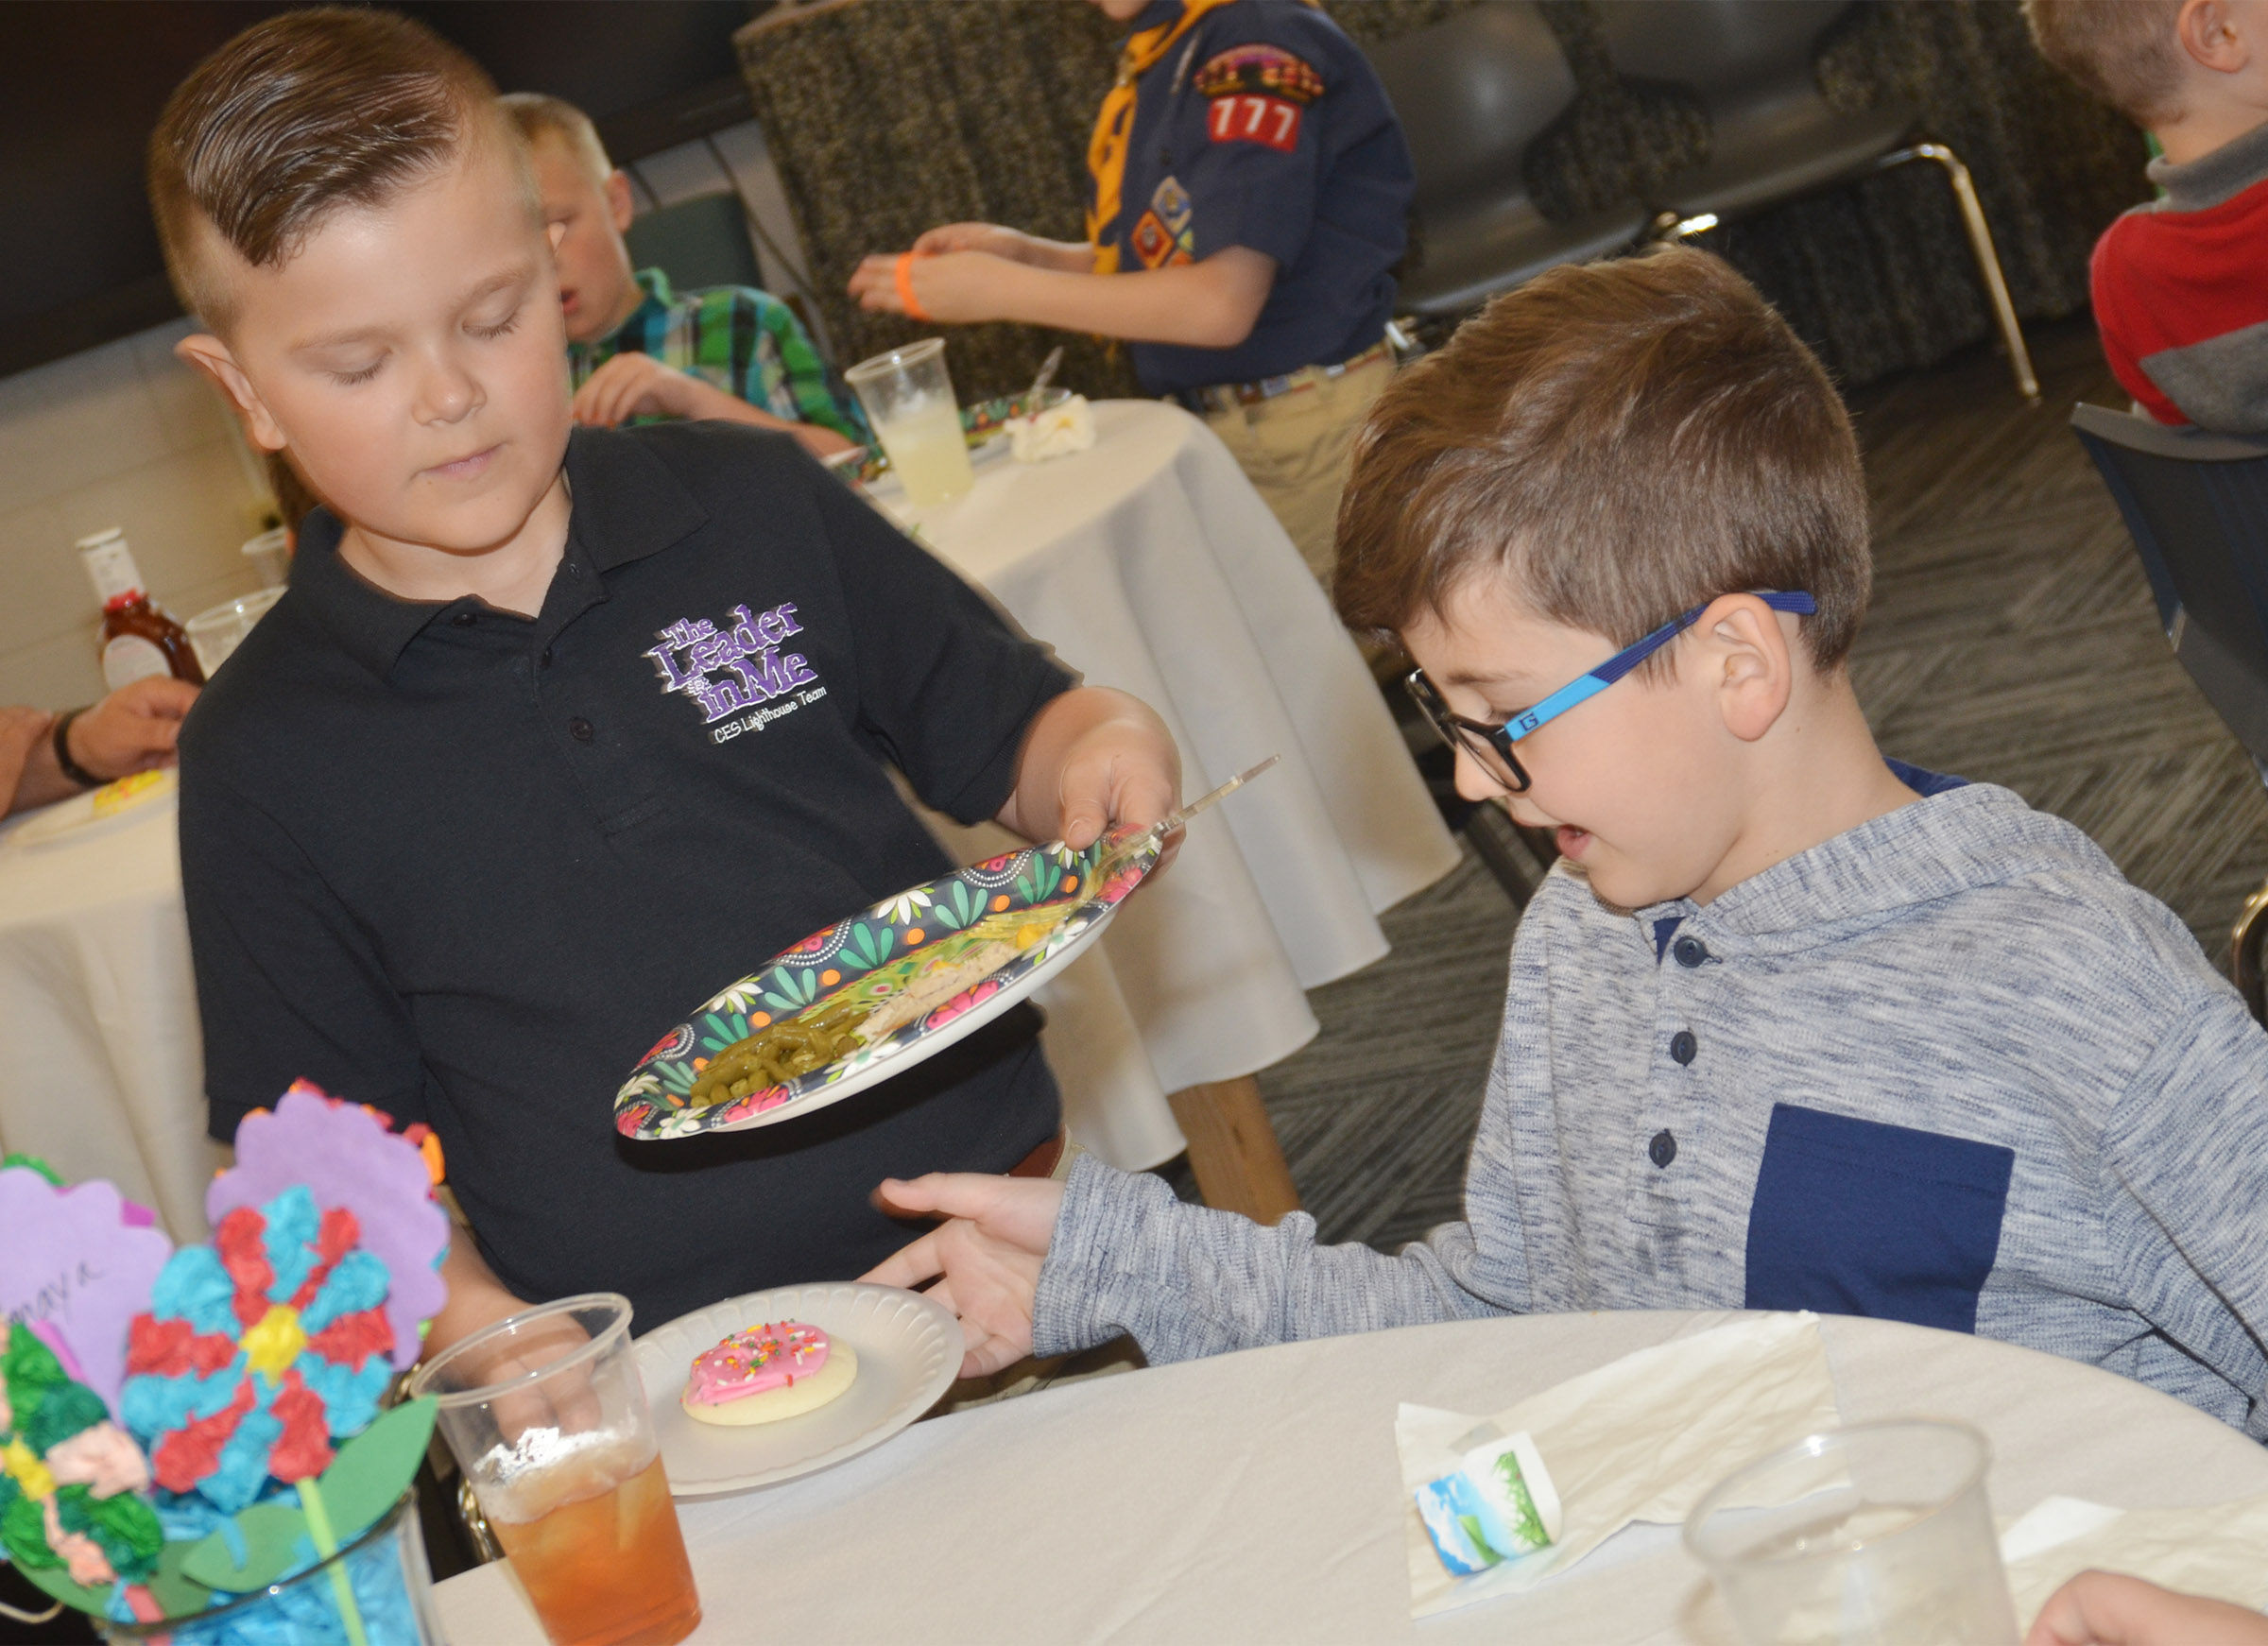 CES Lighthouse Team member Cayton Lawhorn, a second-grader, gives Tye Rhodes, also a second-grader, his dessert.